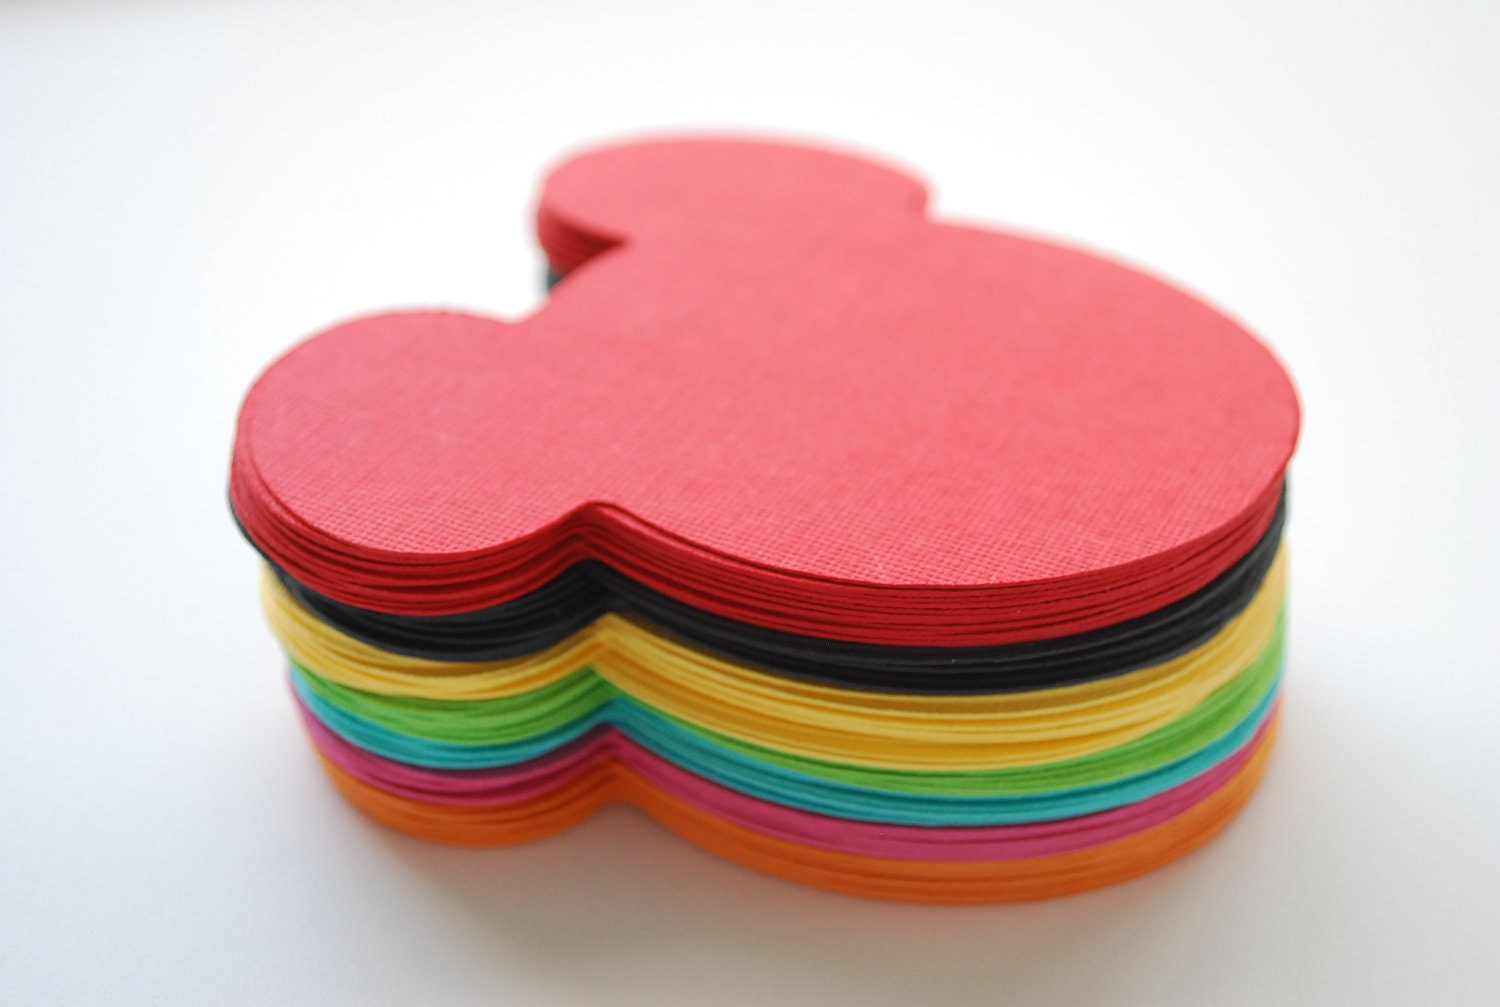 21 Mickey Mouse die cut (4 x3.75 inches) in Rainbow colors (7 Colors) A257